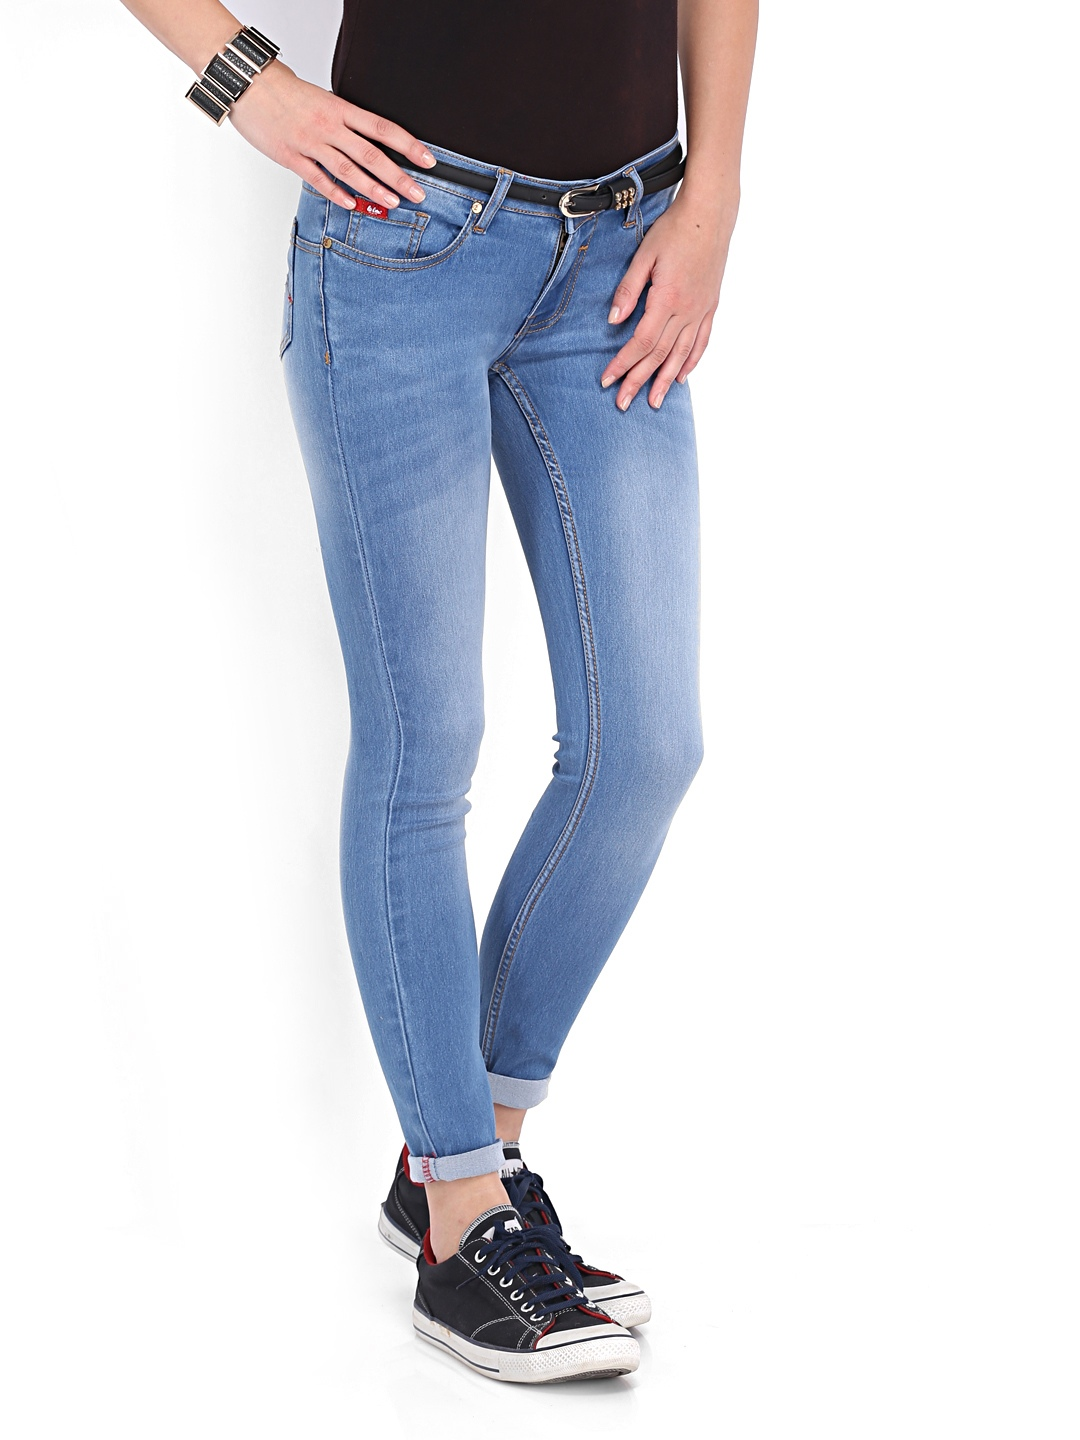 lee cooper jeans for women - photo #15